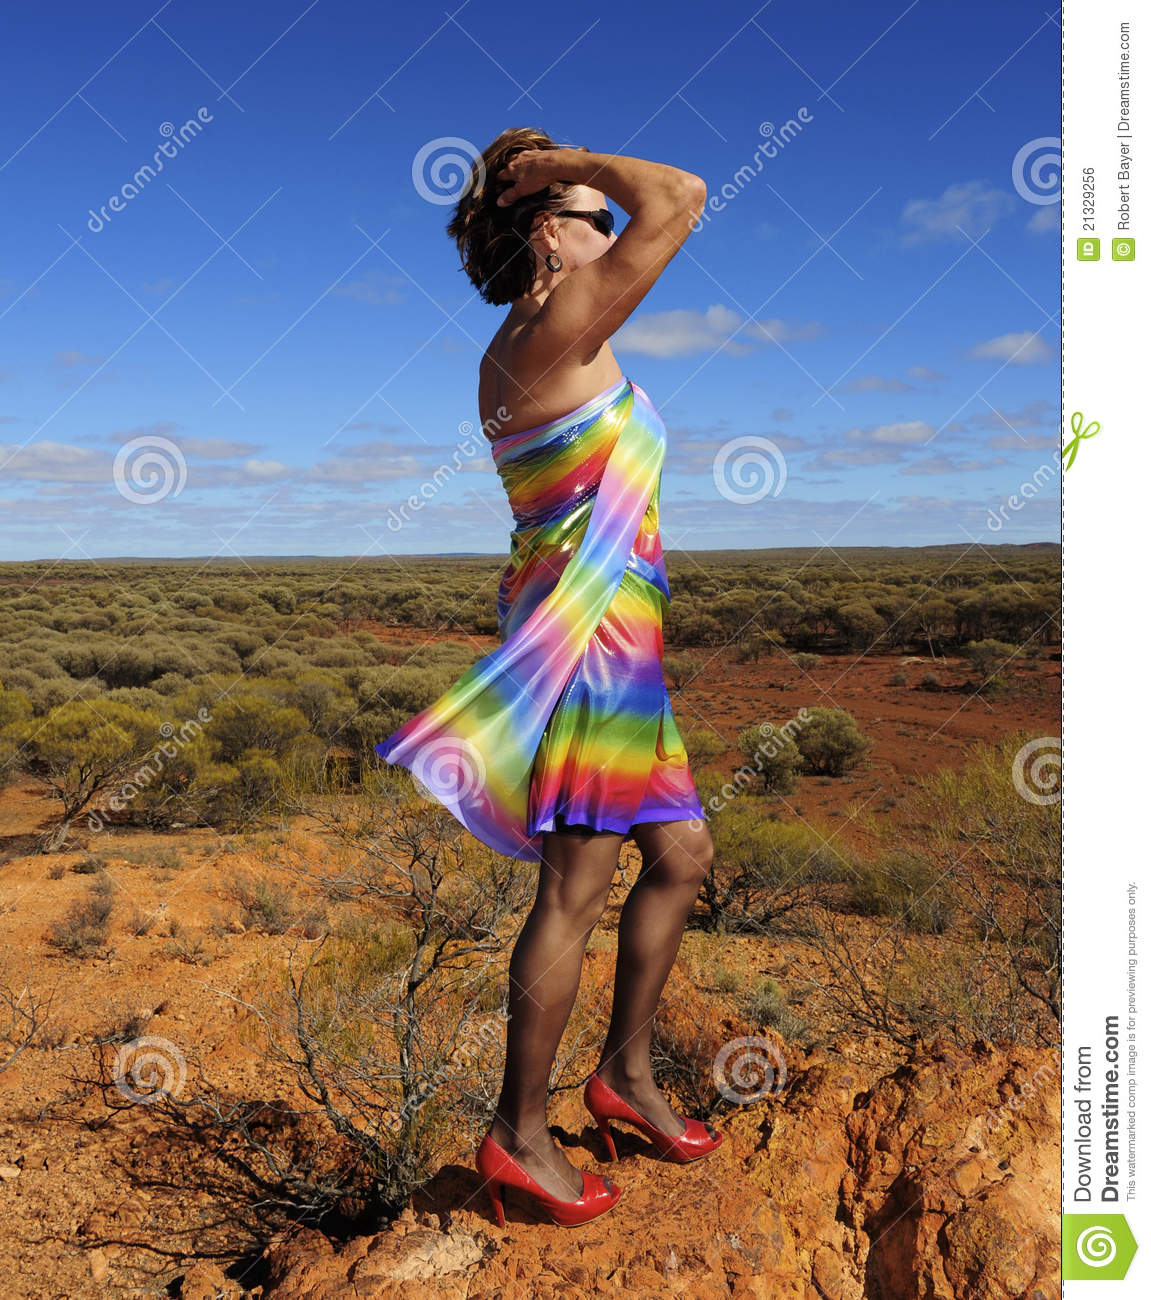 Mature sexy women in nylons Mature Woman In Nature Stock Photo Image Of Nylons Dirt 21329256